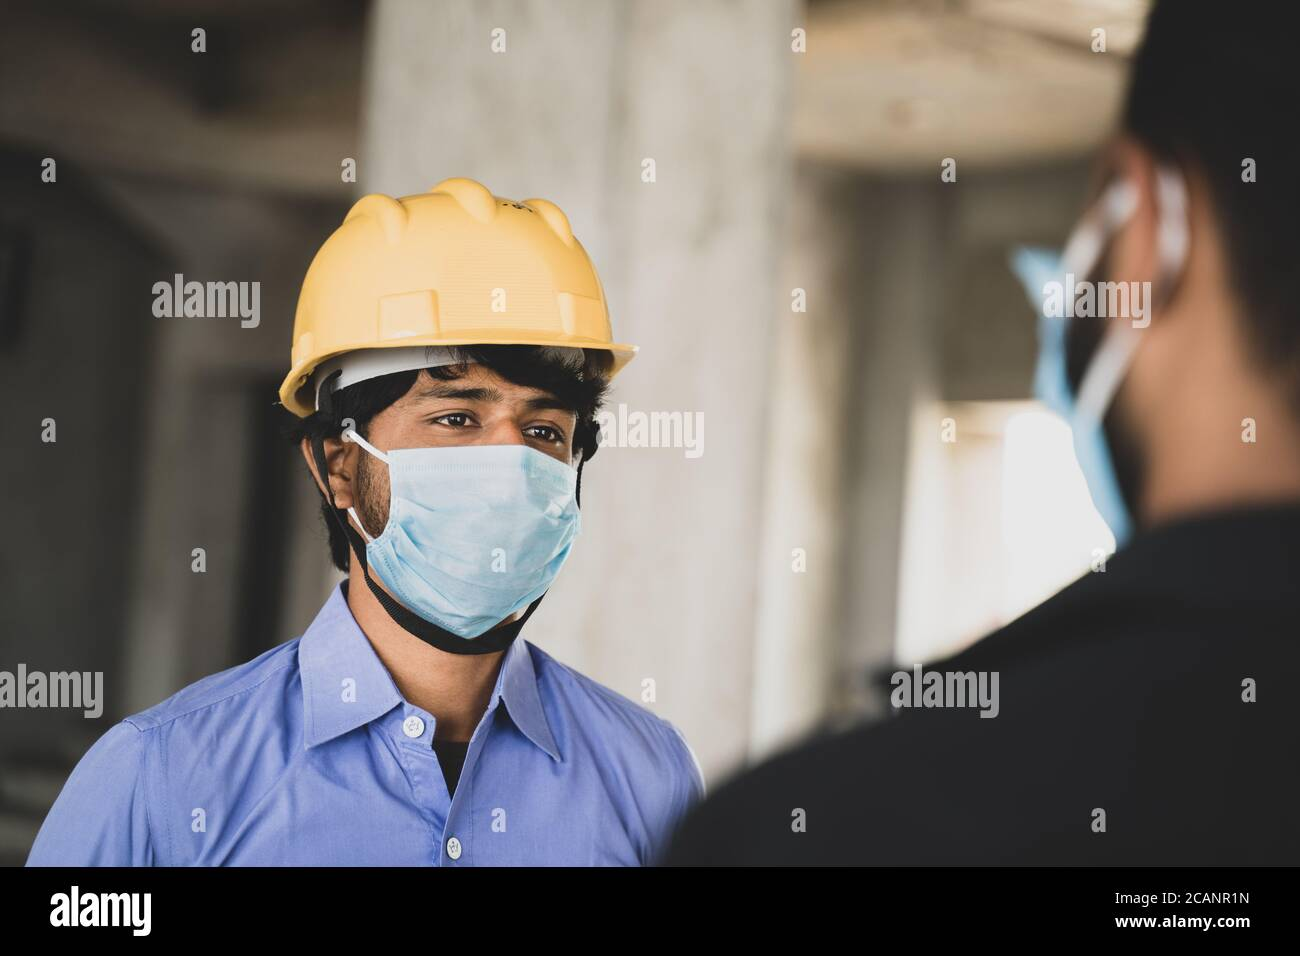 Two Construction workers or engineers at site talking by wearing medical face mask while maintaining social distance - concept of business, industry Stock Photo